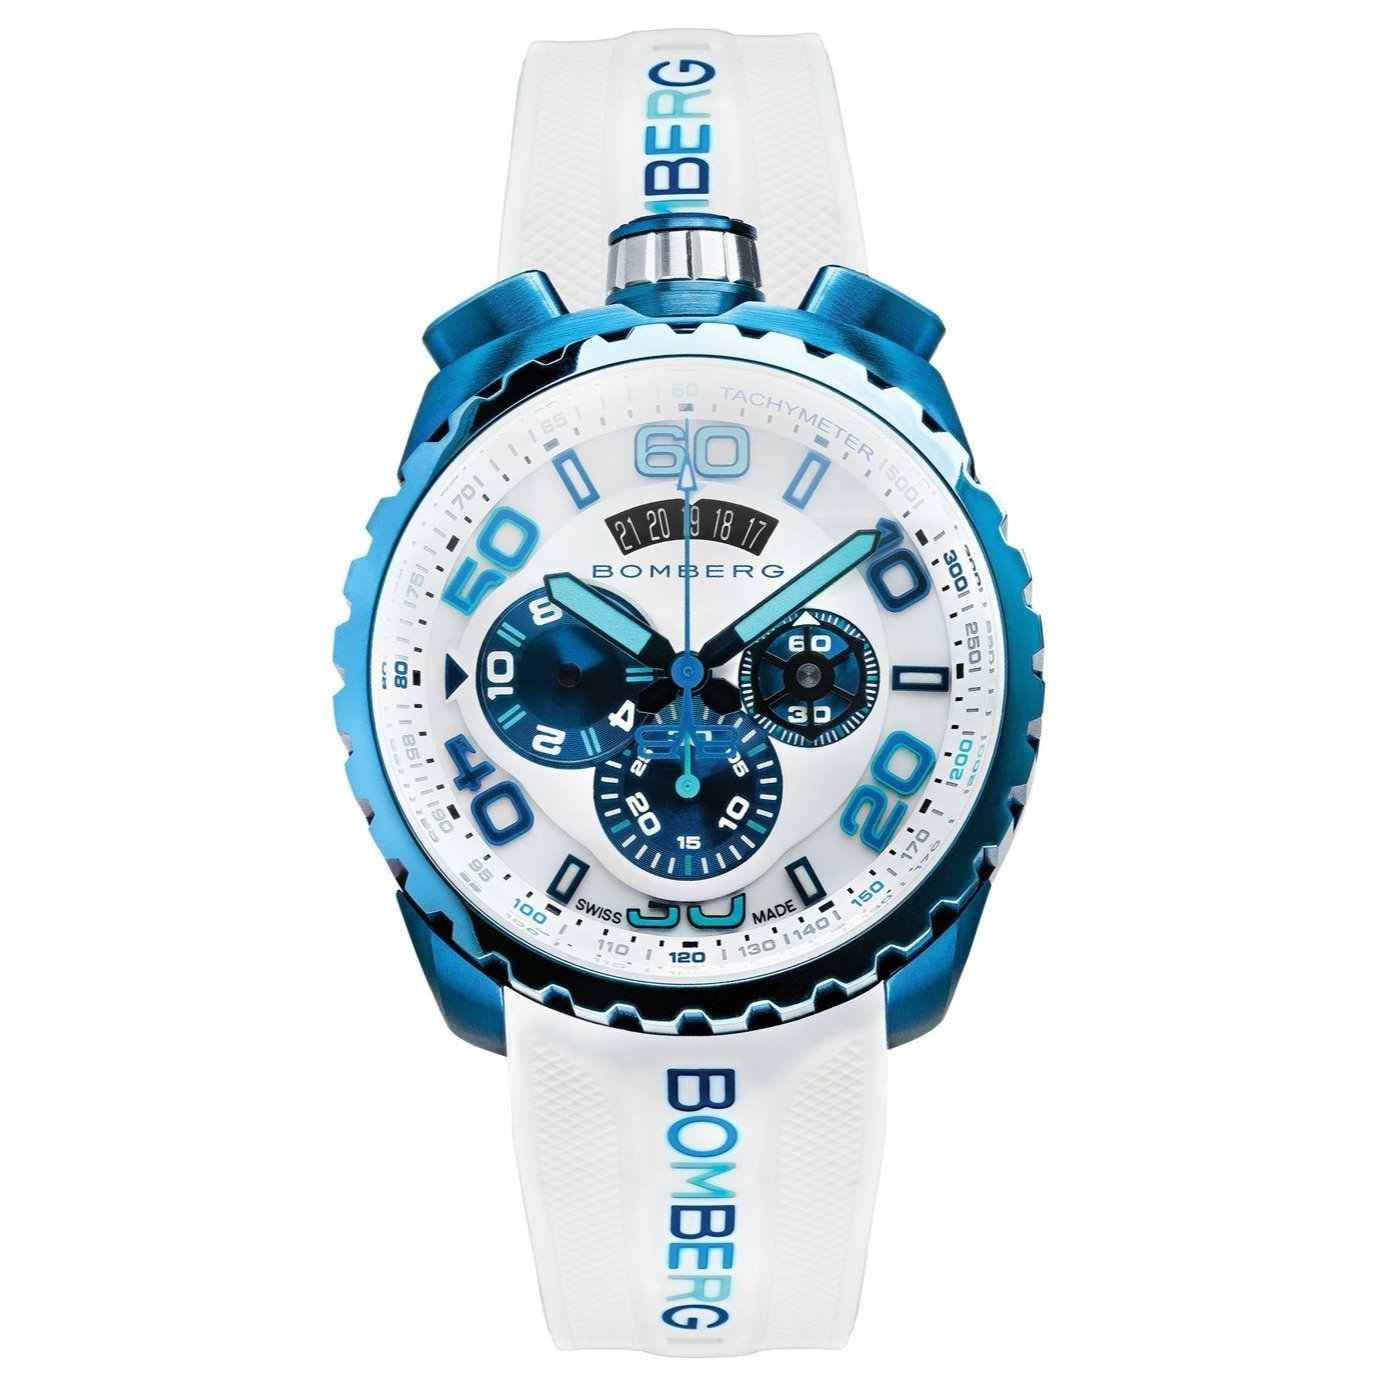 Bomberg BOLT-68 Chronograph Blue PVD - Watches & Crystals